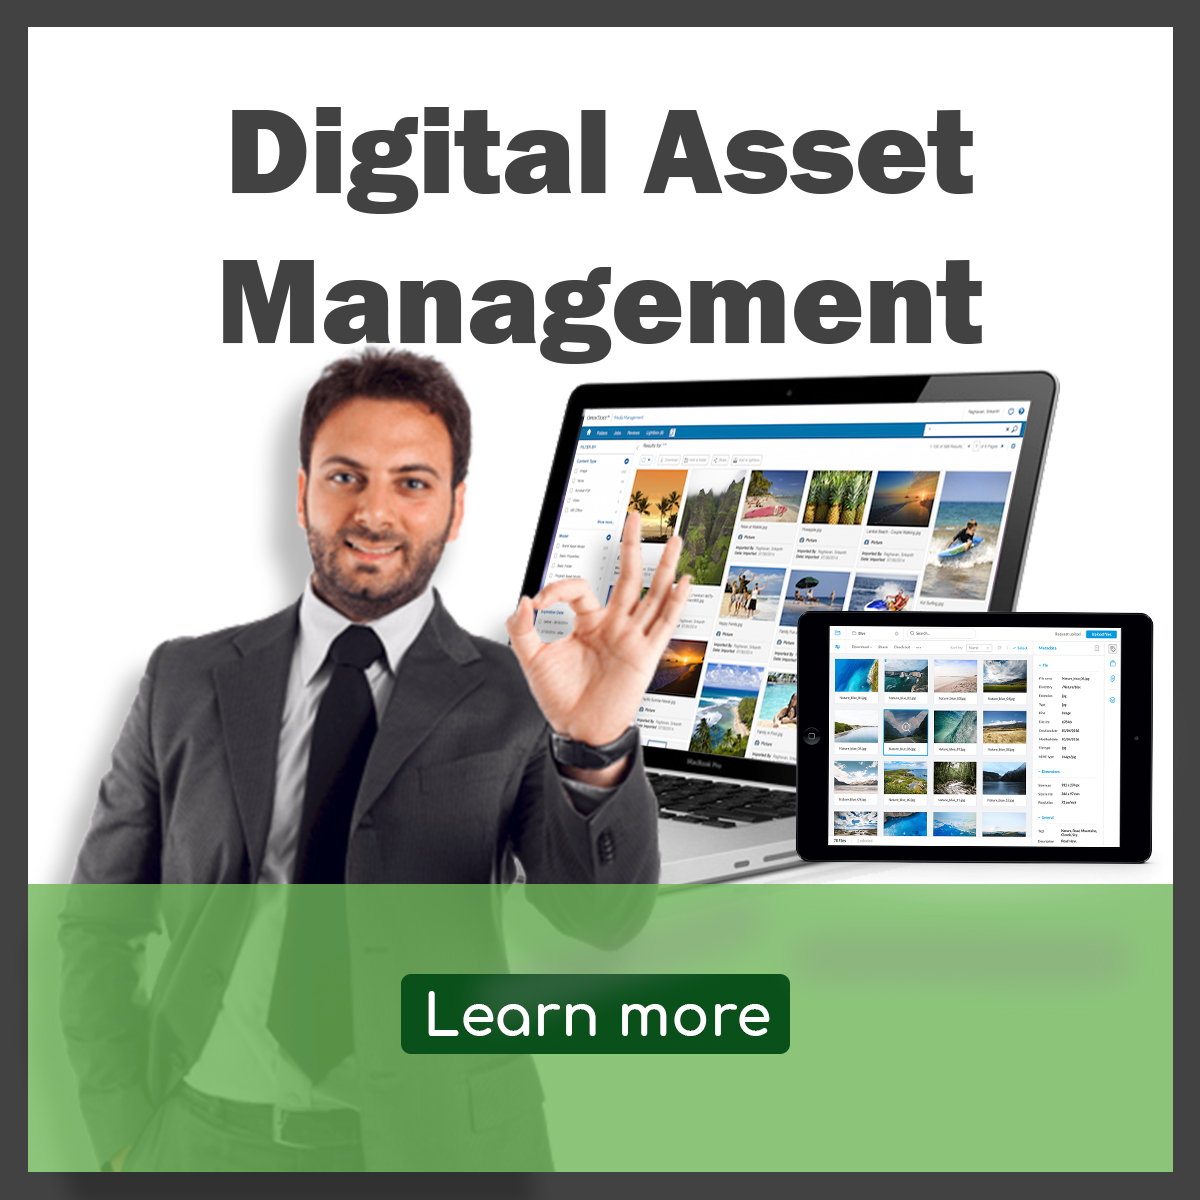 Digital Assets Management by Skillz Middle East